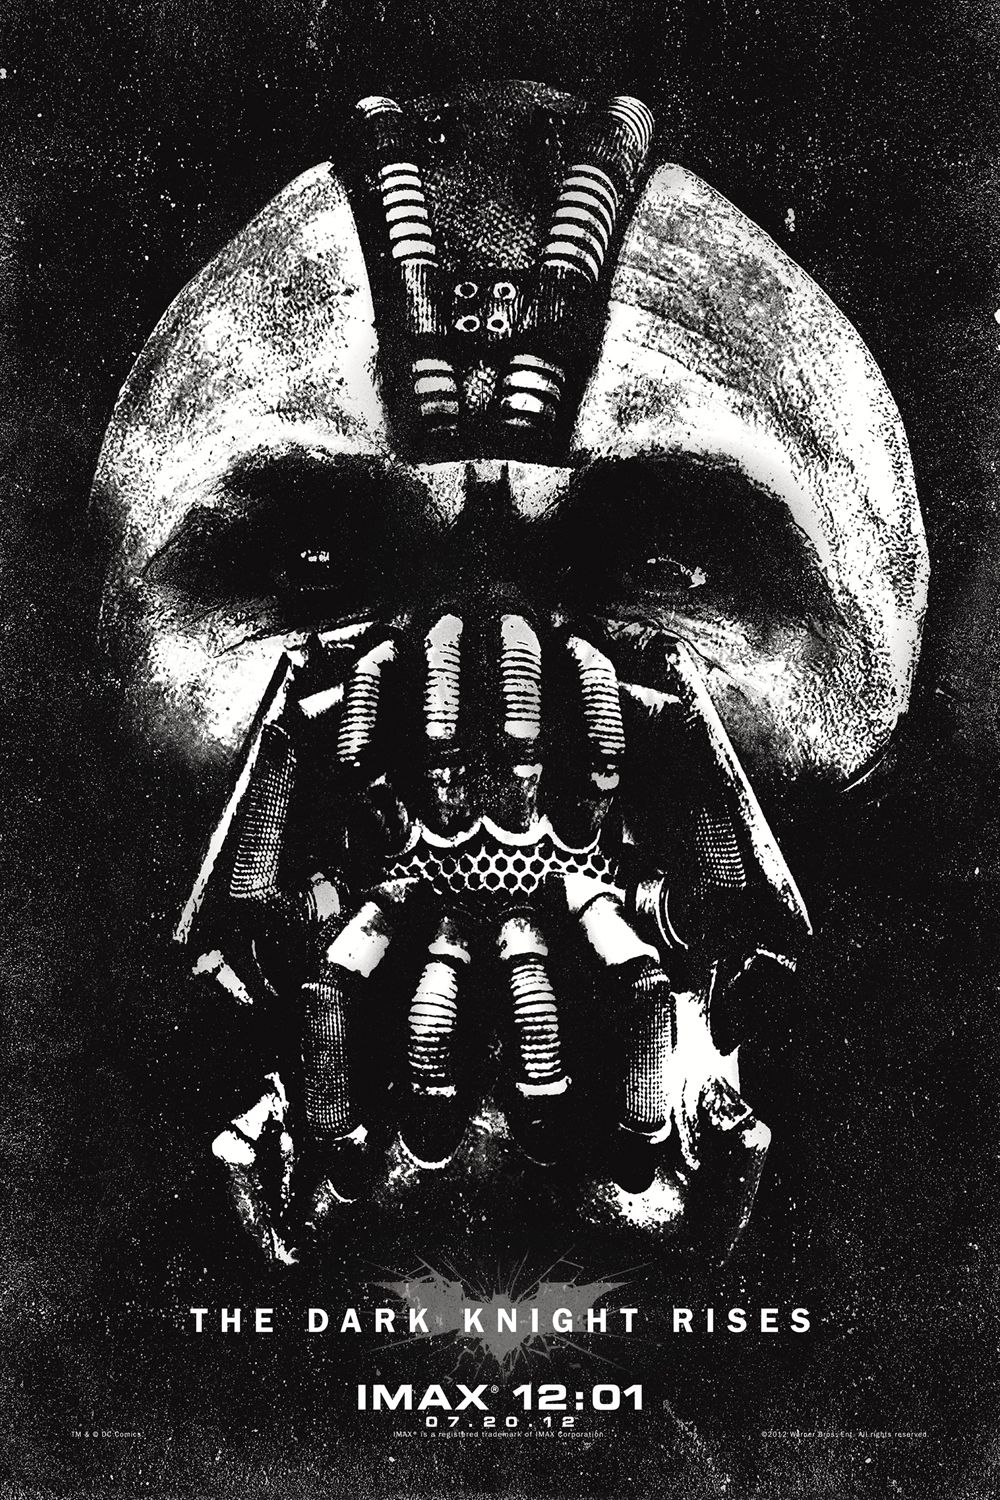 THE DARK KNIGHT RISES IMAX Poster | Collider